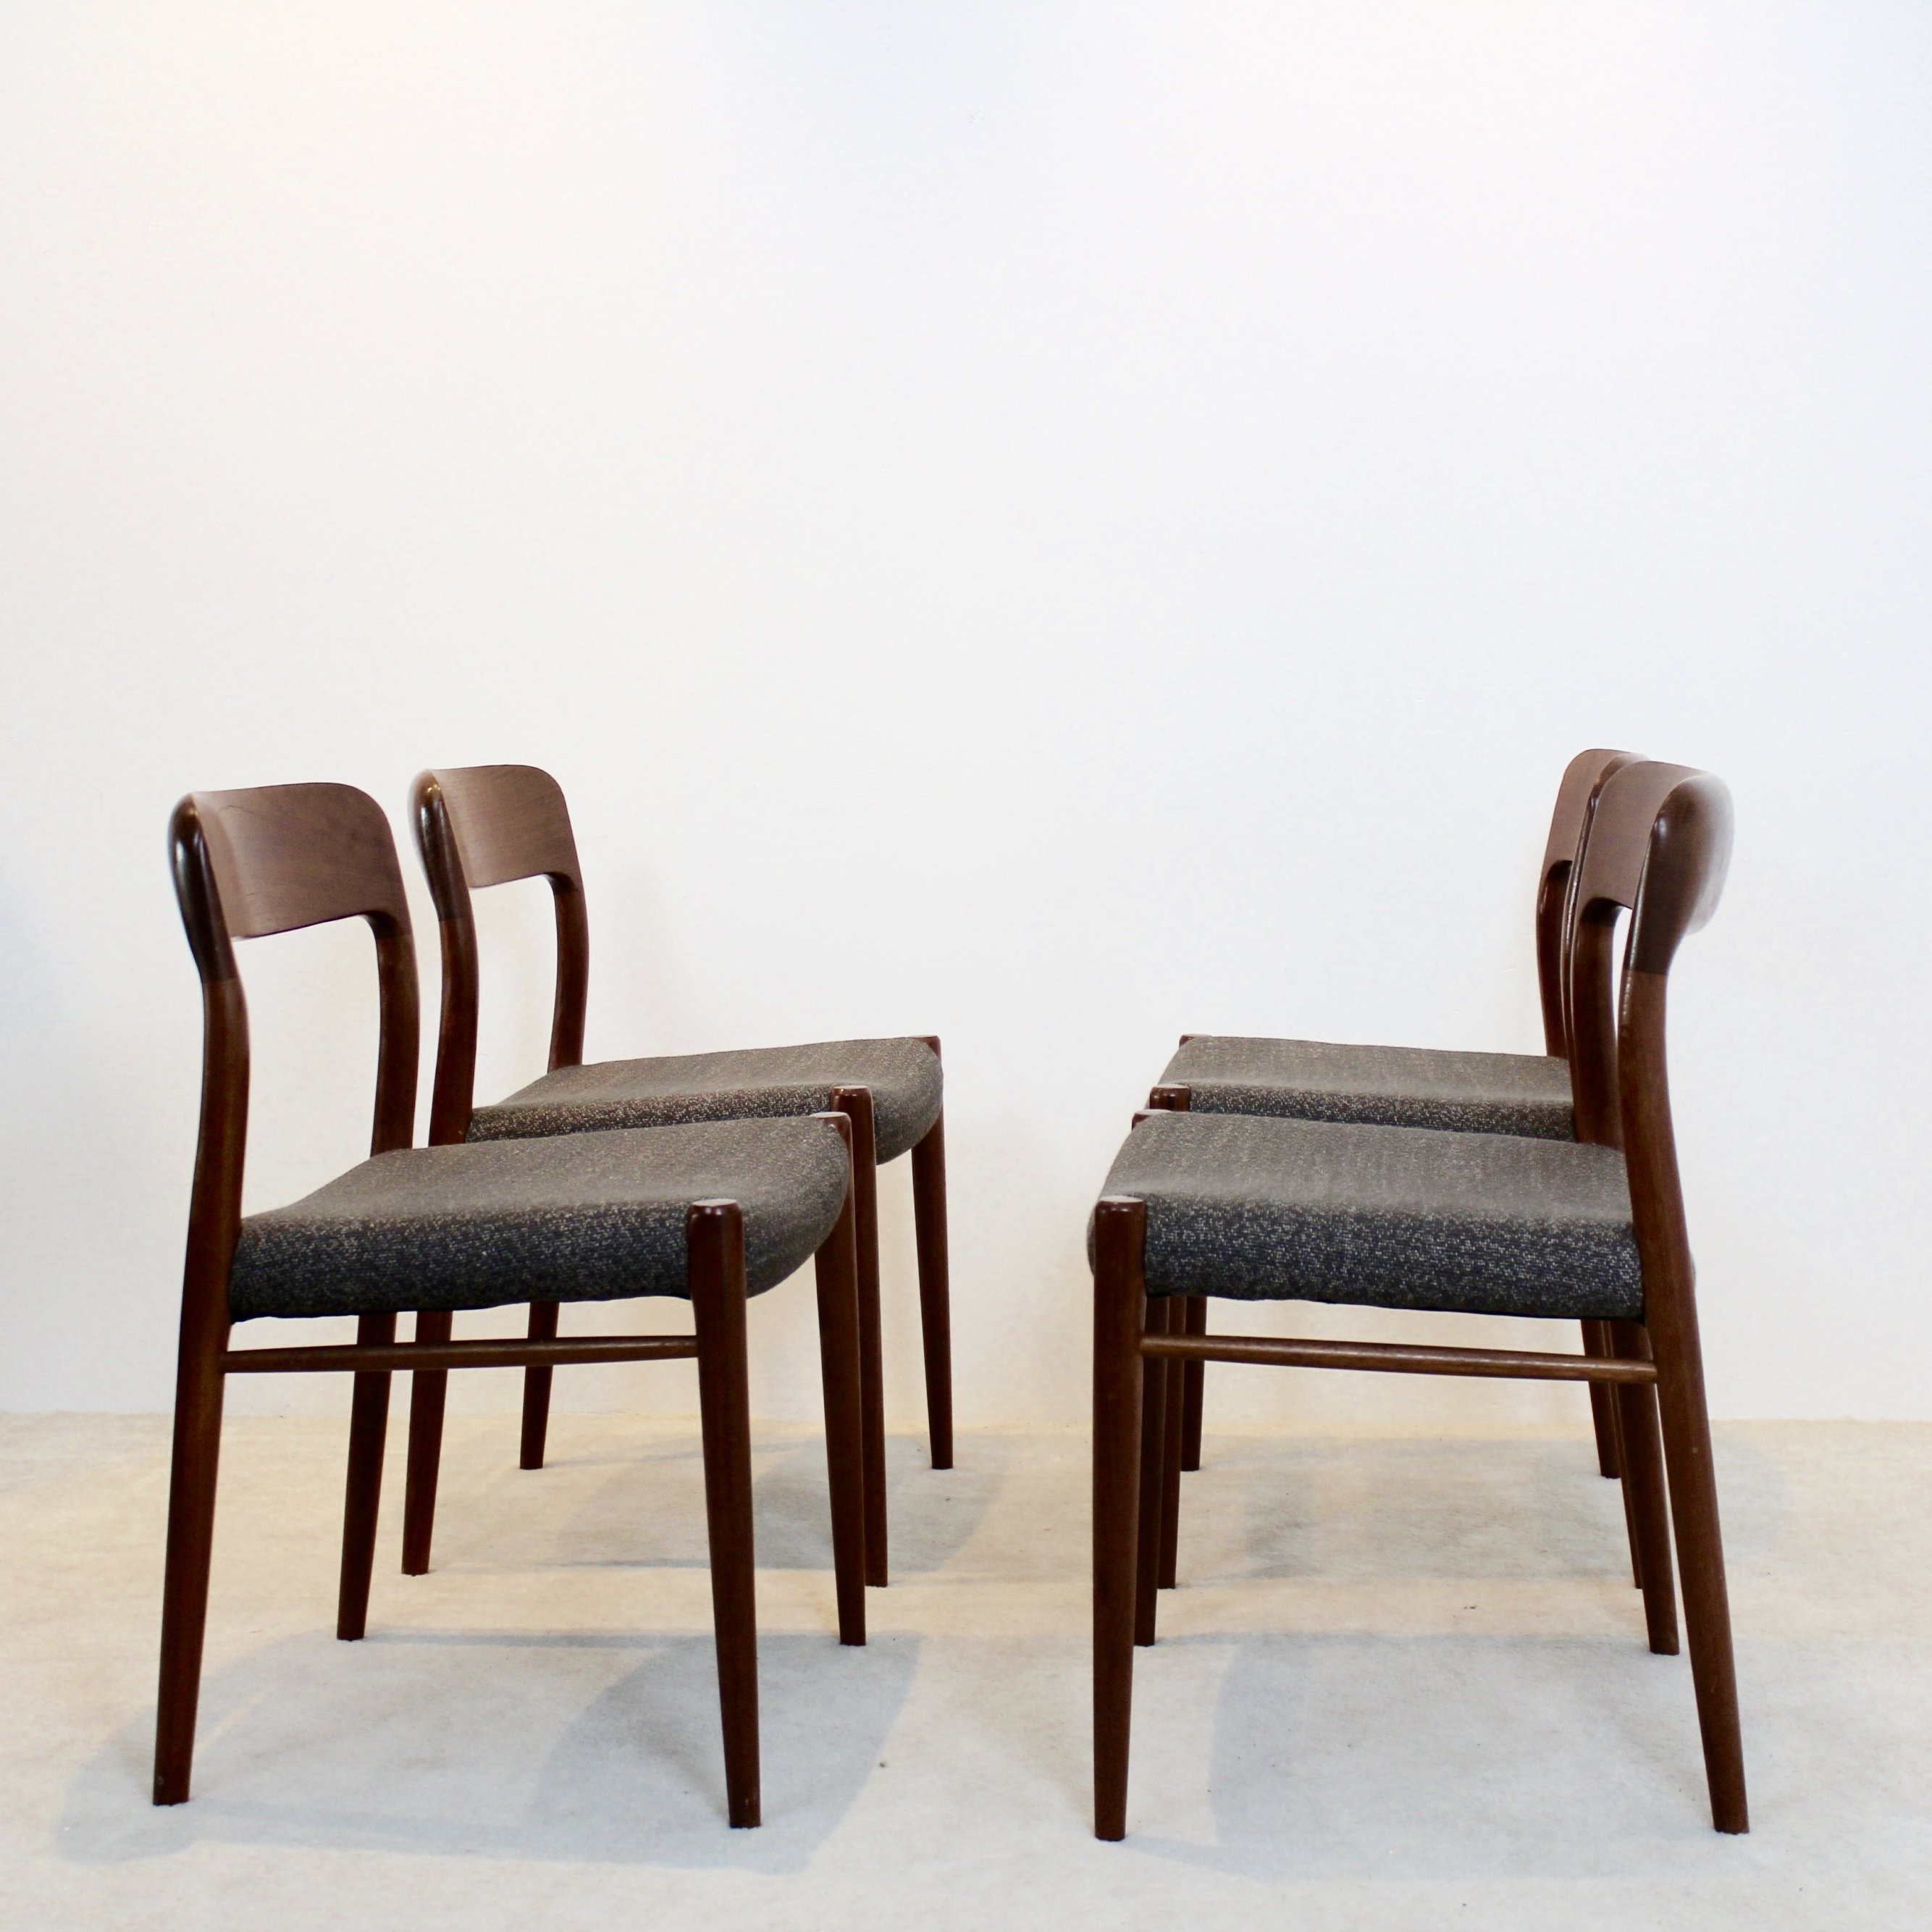 Charmant Model 75 Dining Chairs By Niels Otto Møller For J.L. Møllers Møbelfabrik A/S